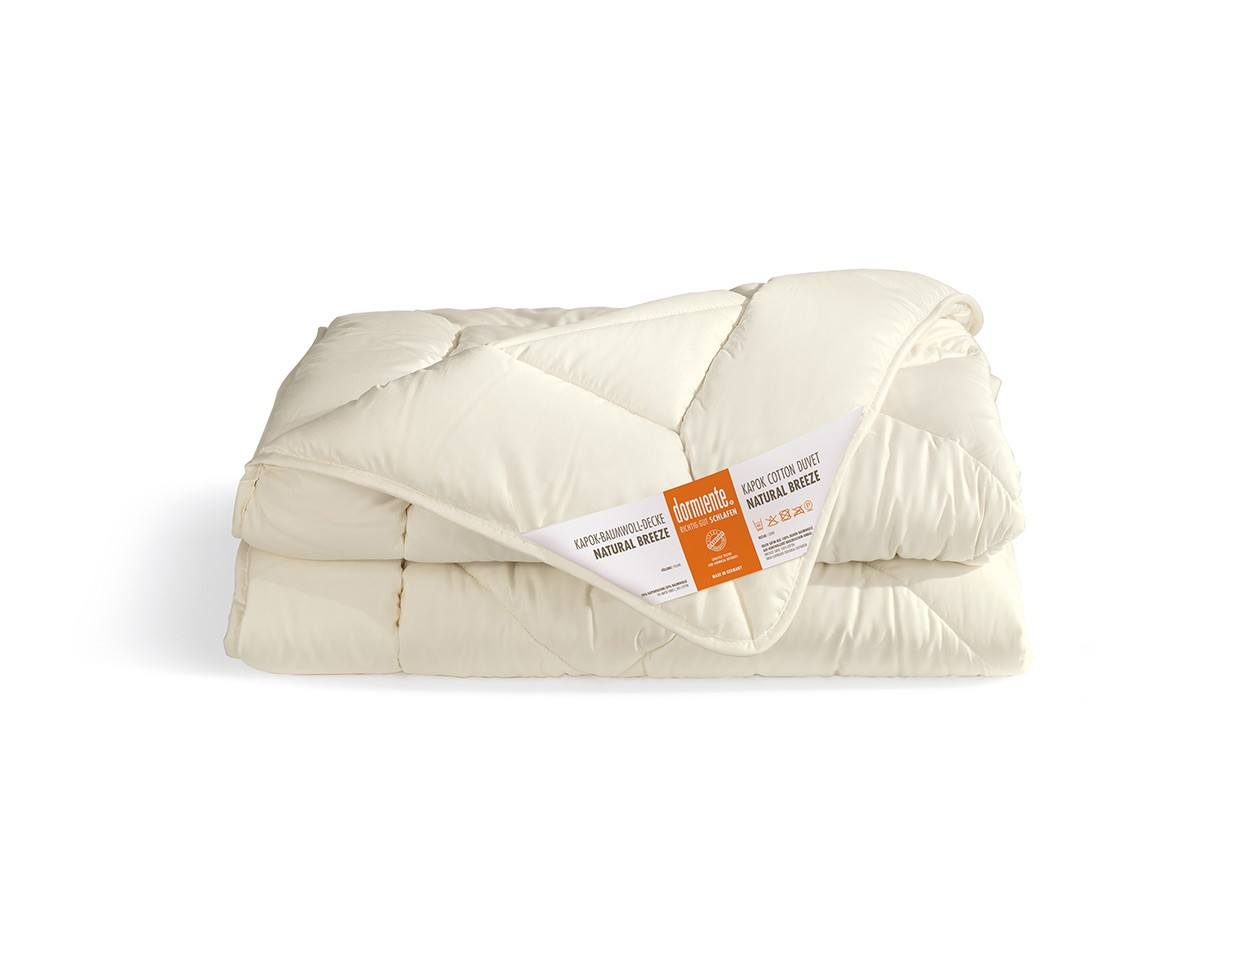 Daunendecke 100x135 Dormiente Winter Kinderdecke Natural Breeze Duodecke Deluxe 100x135